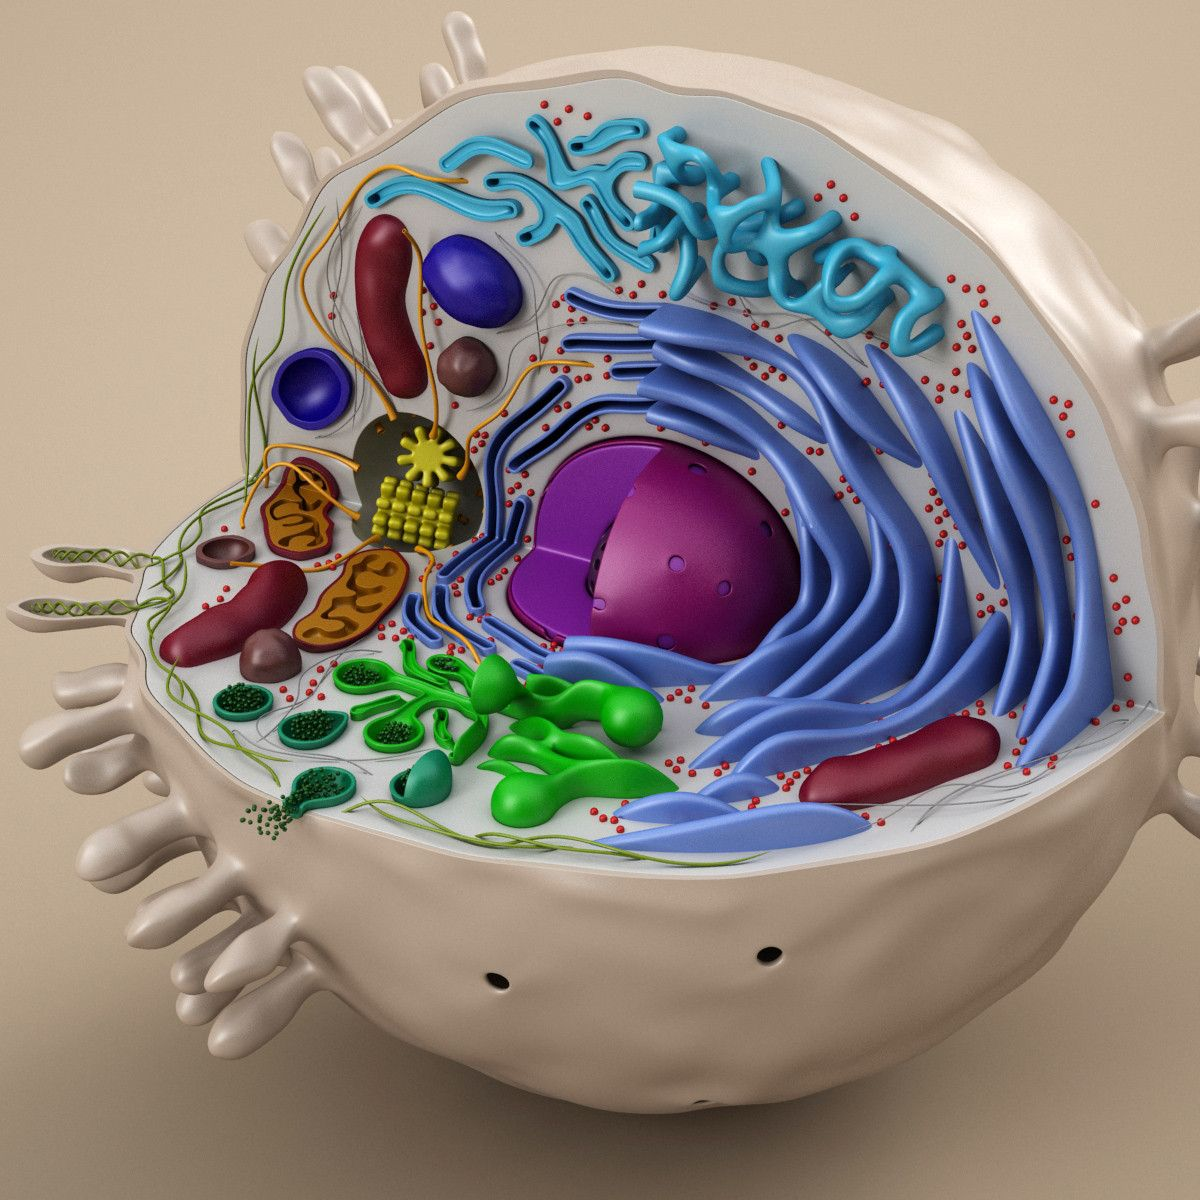 cell animal 3d model | Células | Pinterest | Celulas, Experimentos ...